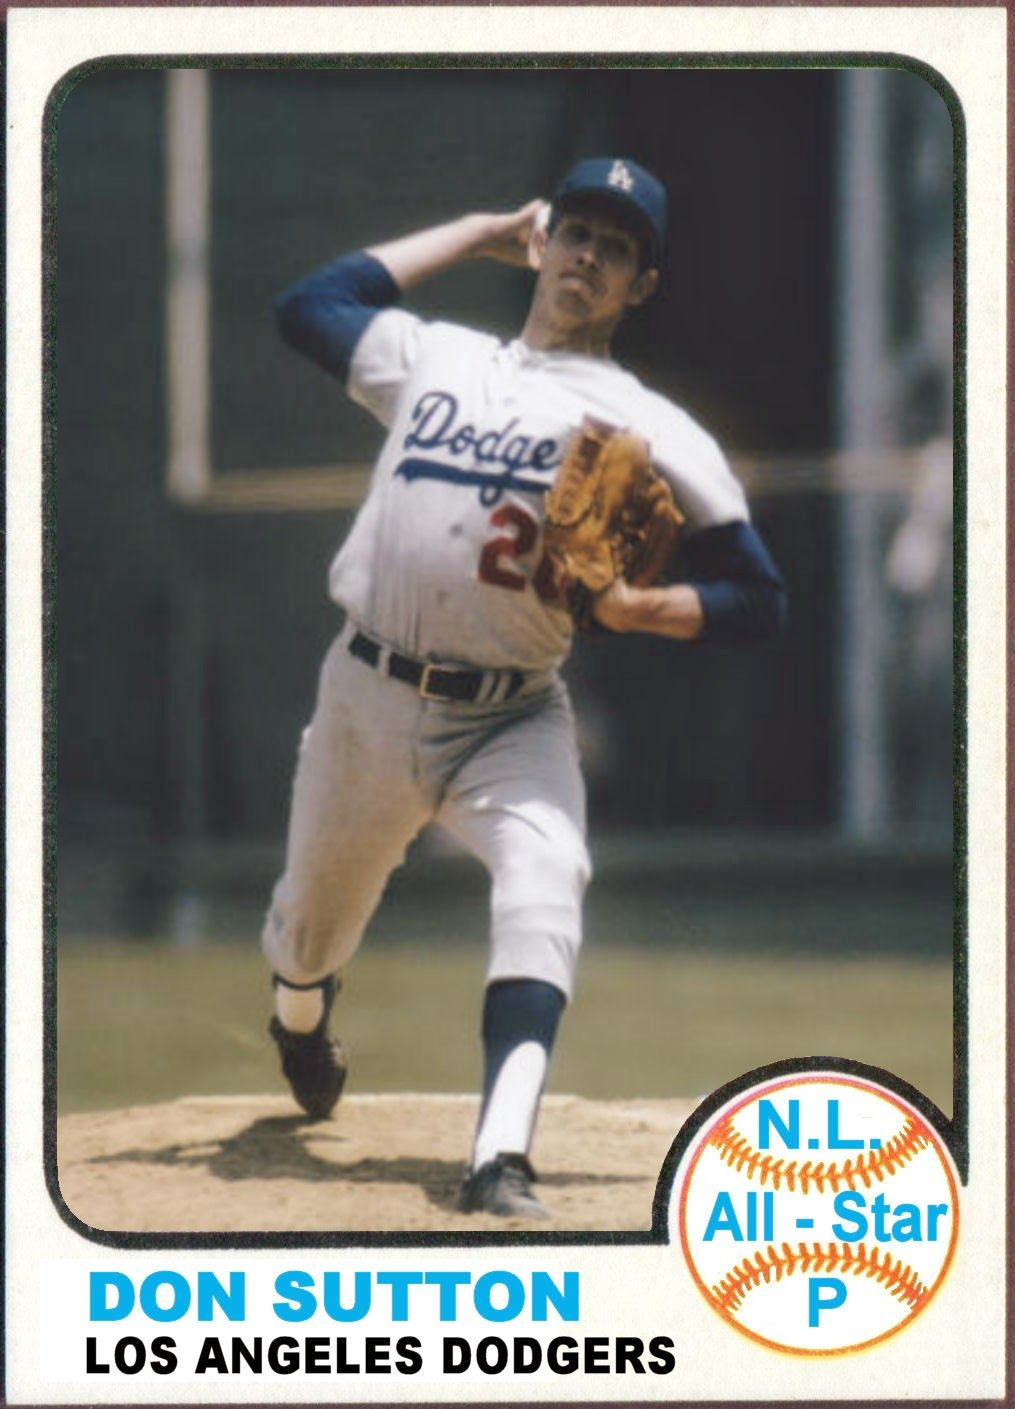 1973 Topps All Star Cards National League West Old